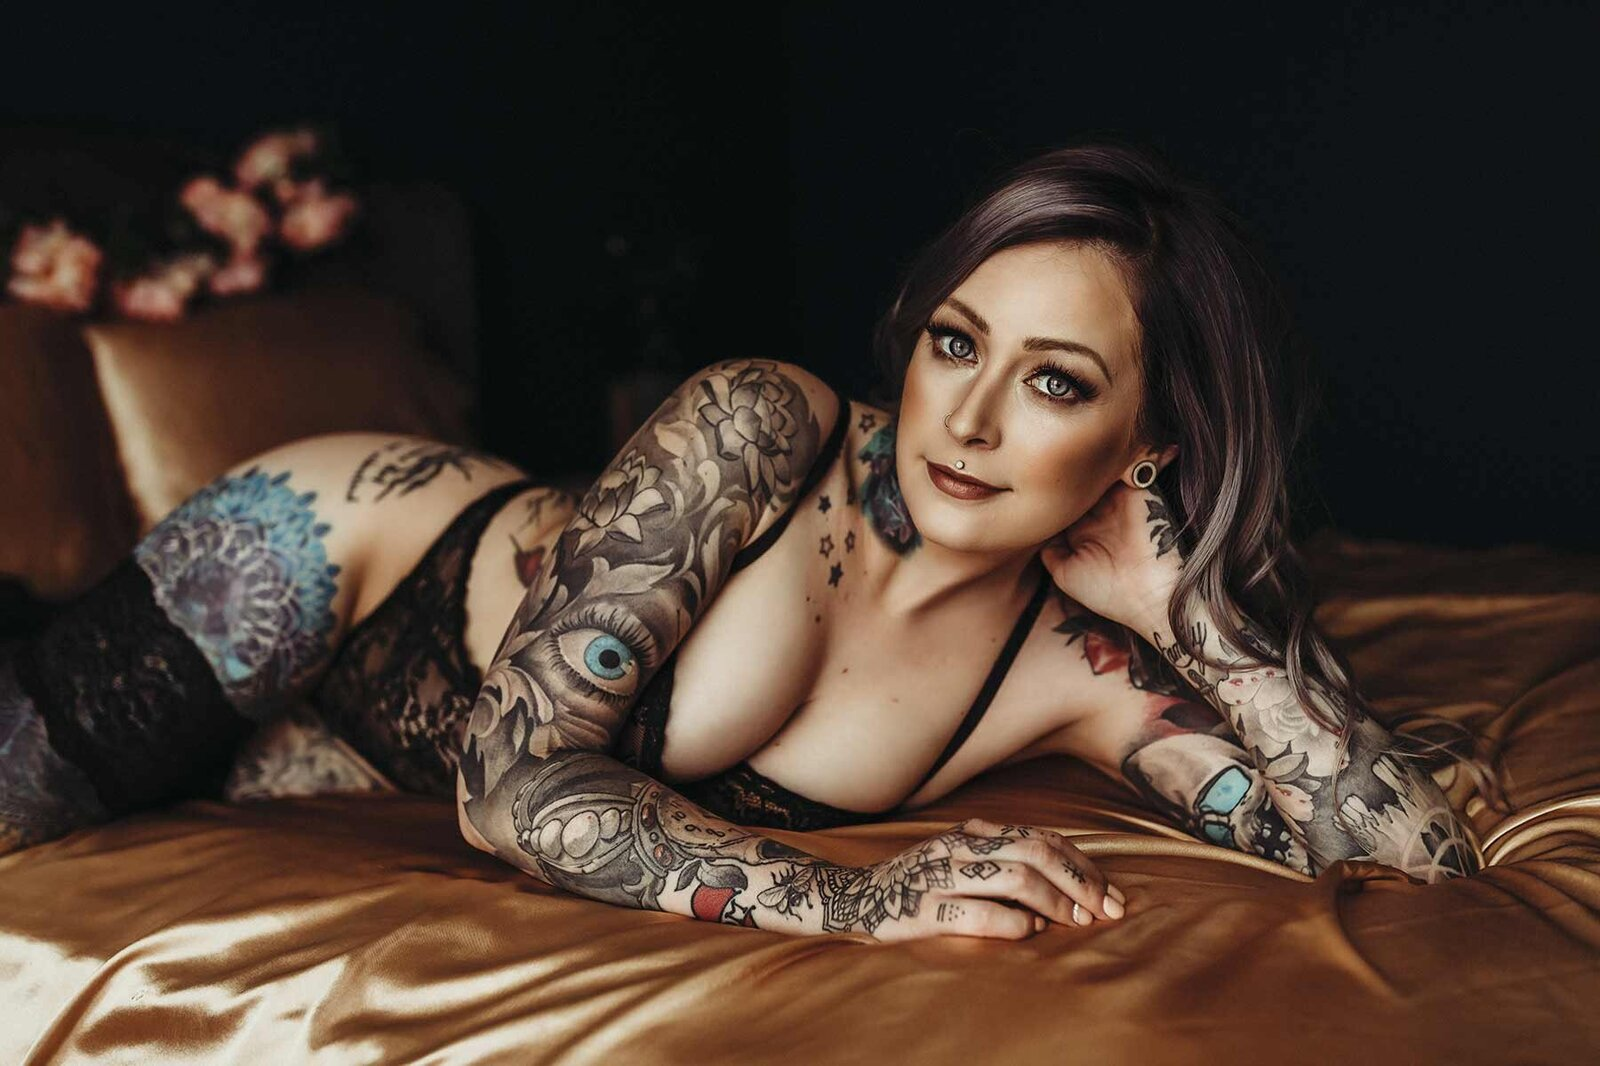 Woman with tattoos laying on copper silk sheets